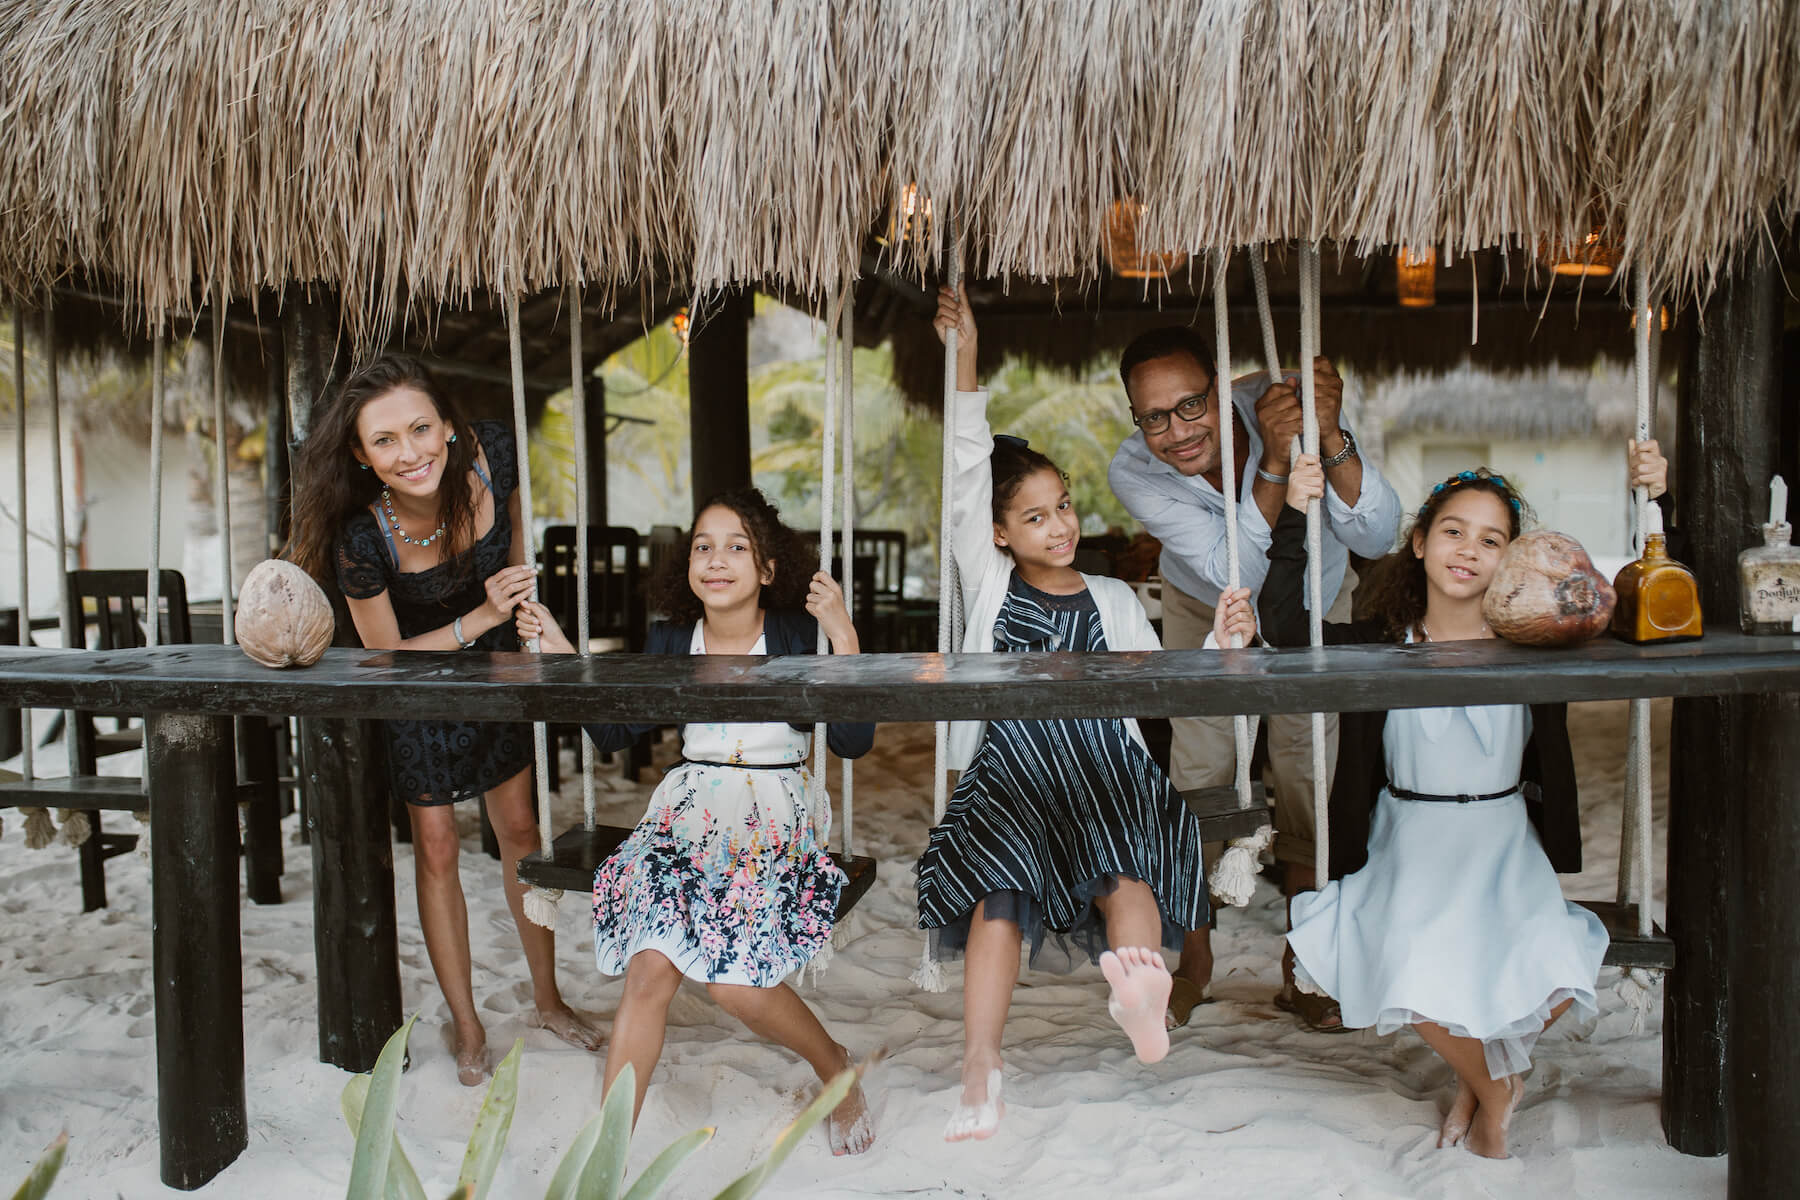 Family trip in Tulum, Mexico